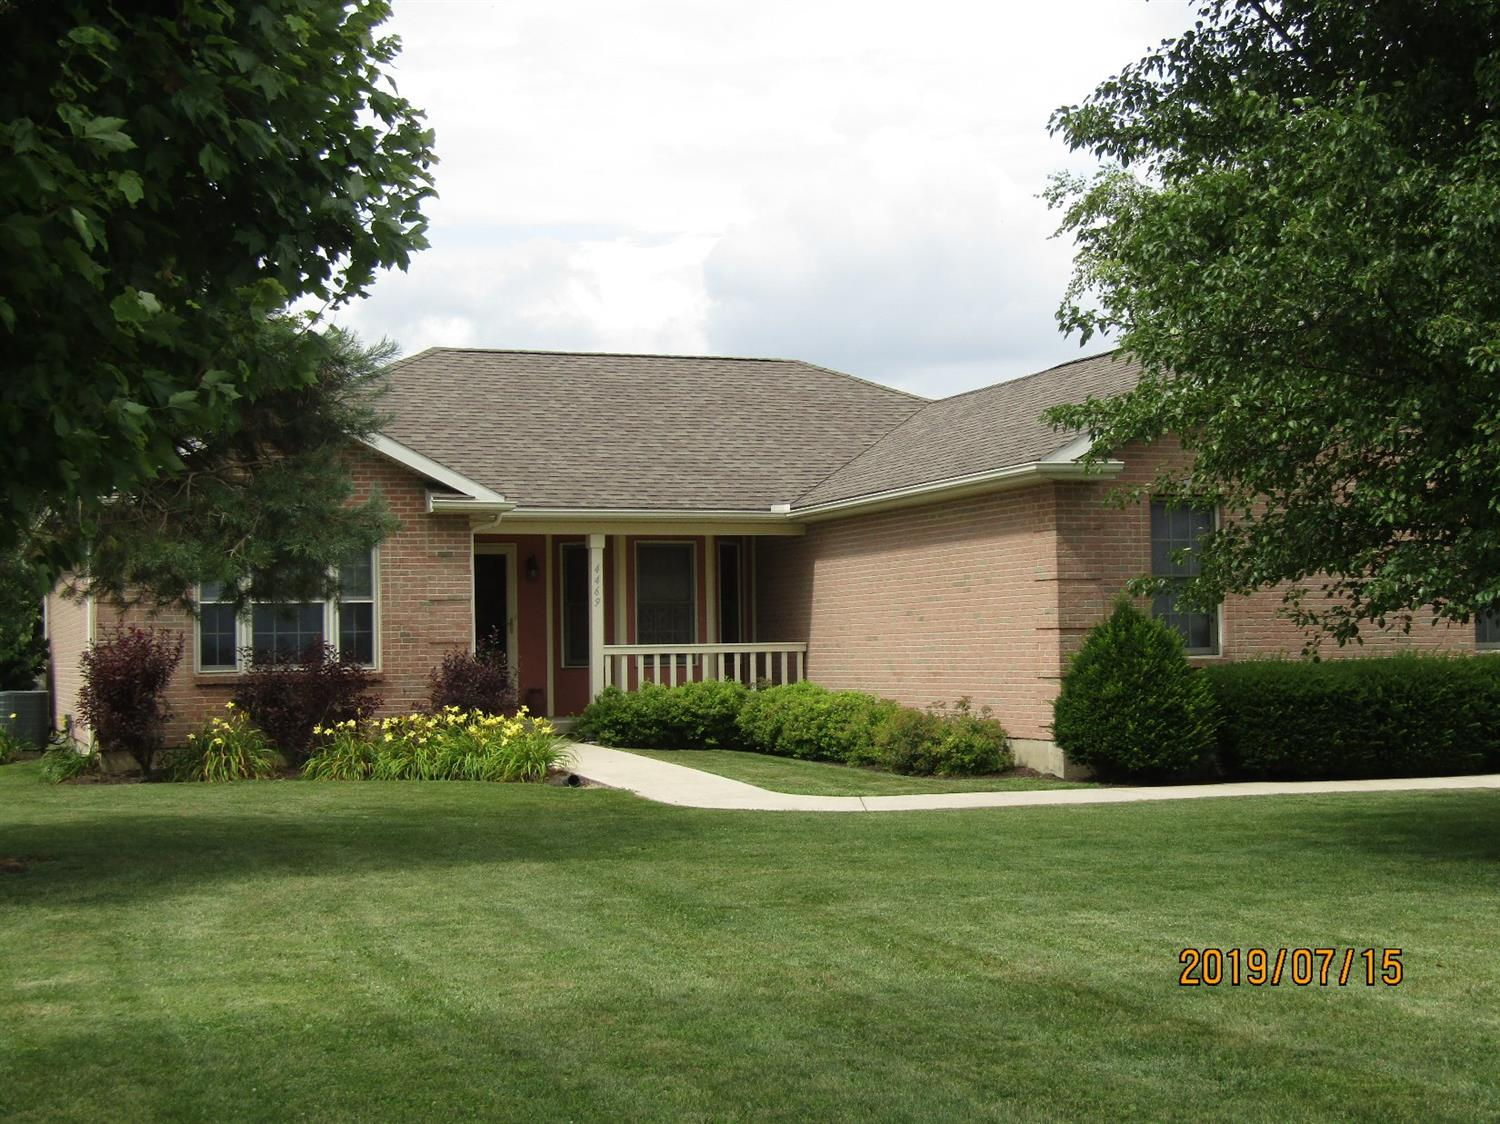 4469 Crawfordsville Campbellstown Rd Preble County, OH